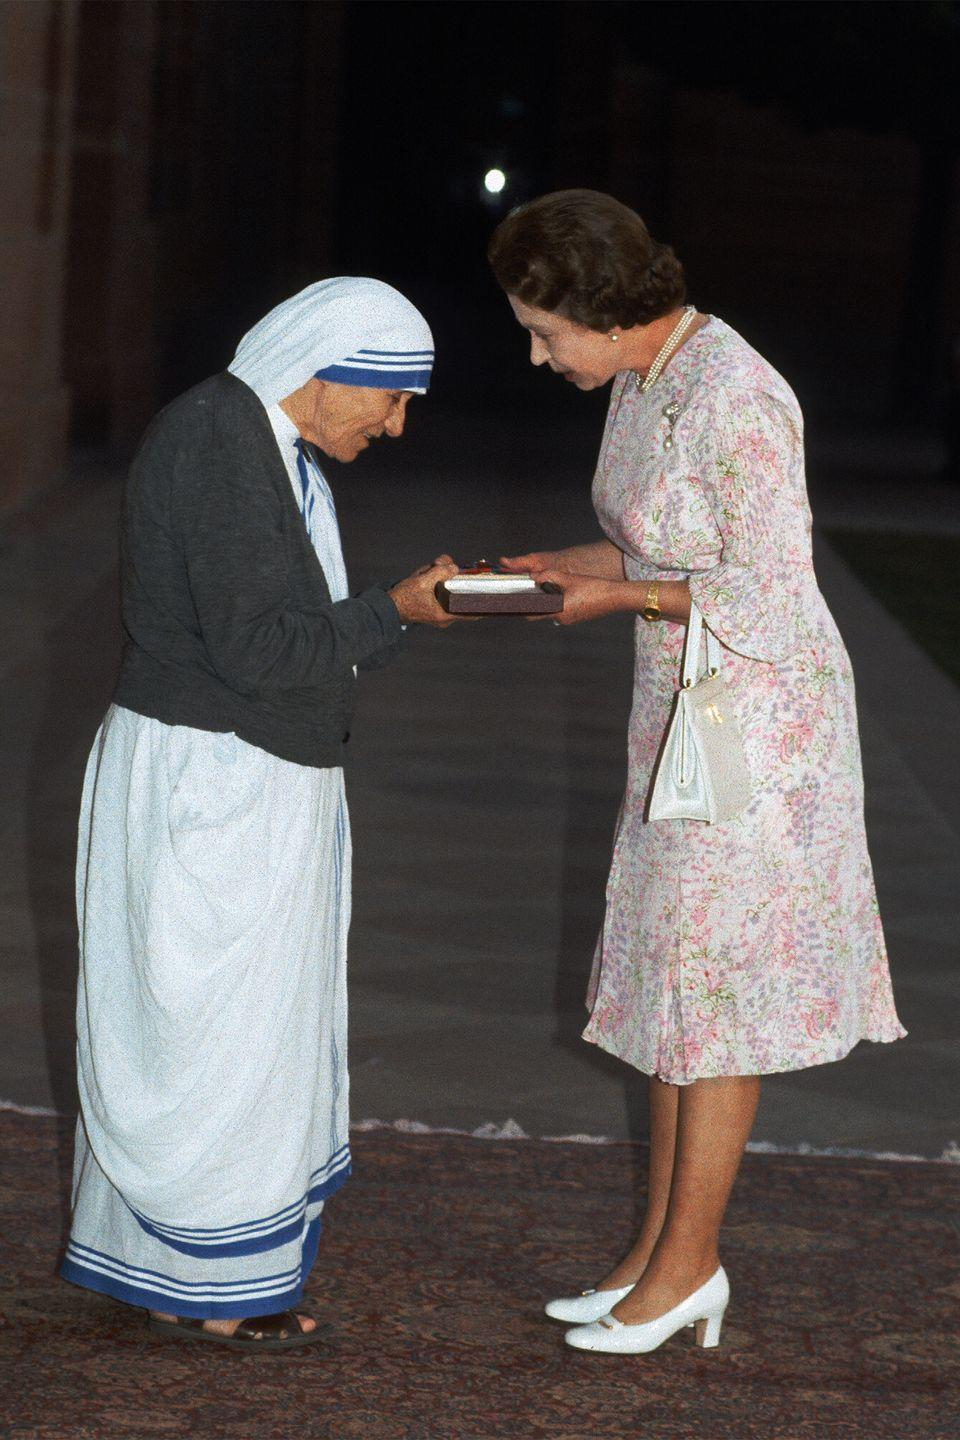 <p>While in Delhi, India, the queen met with Mother Teresa of Calcutta and presented her with the Order of Merit, which recognizes distinguished leaders and culture shifters.</p>